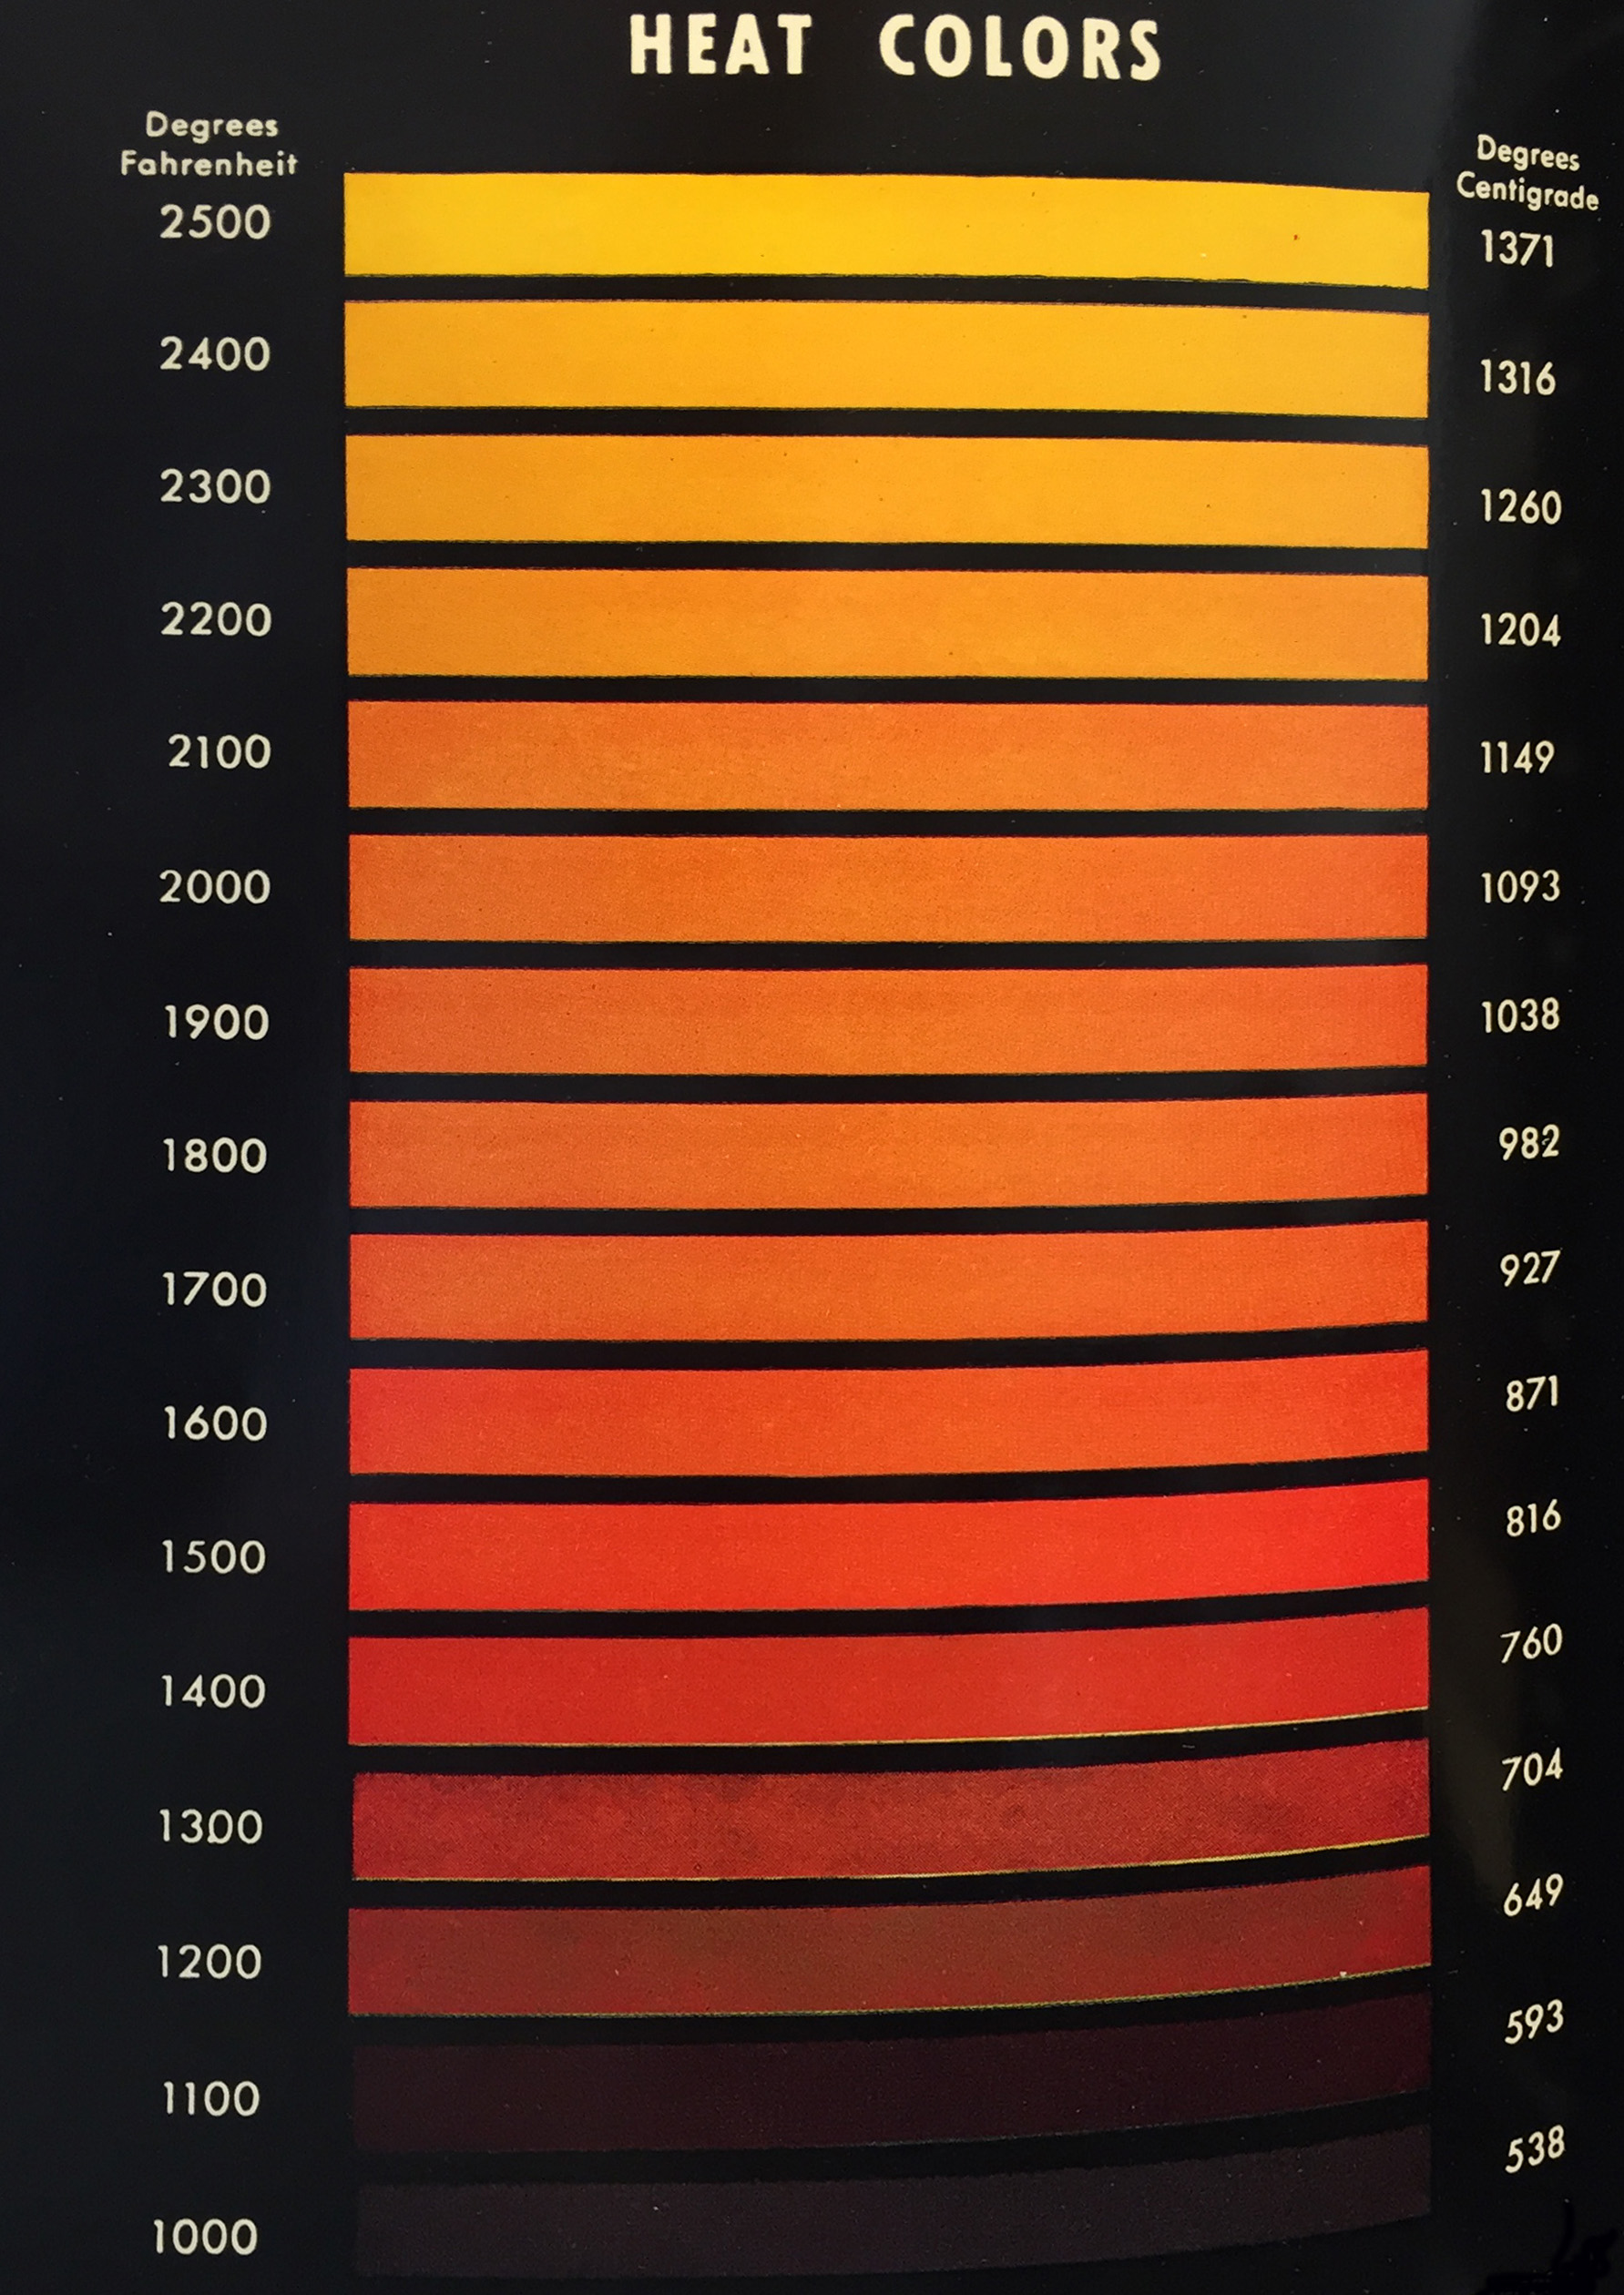 Heat treat colors for steel fahrenheit and celsius temperatures